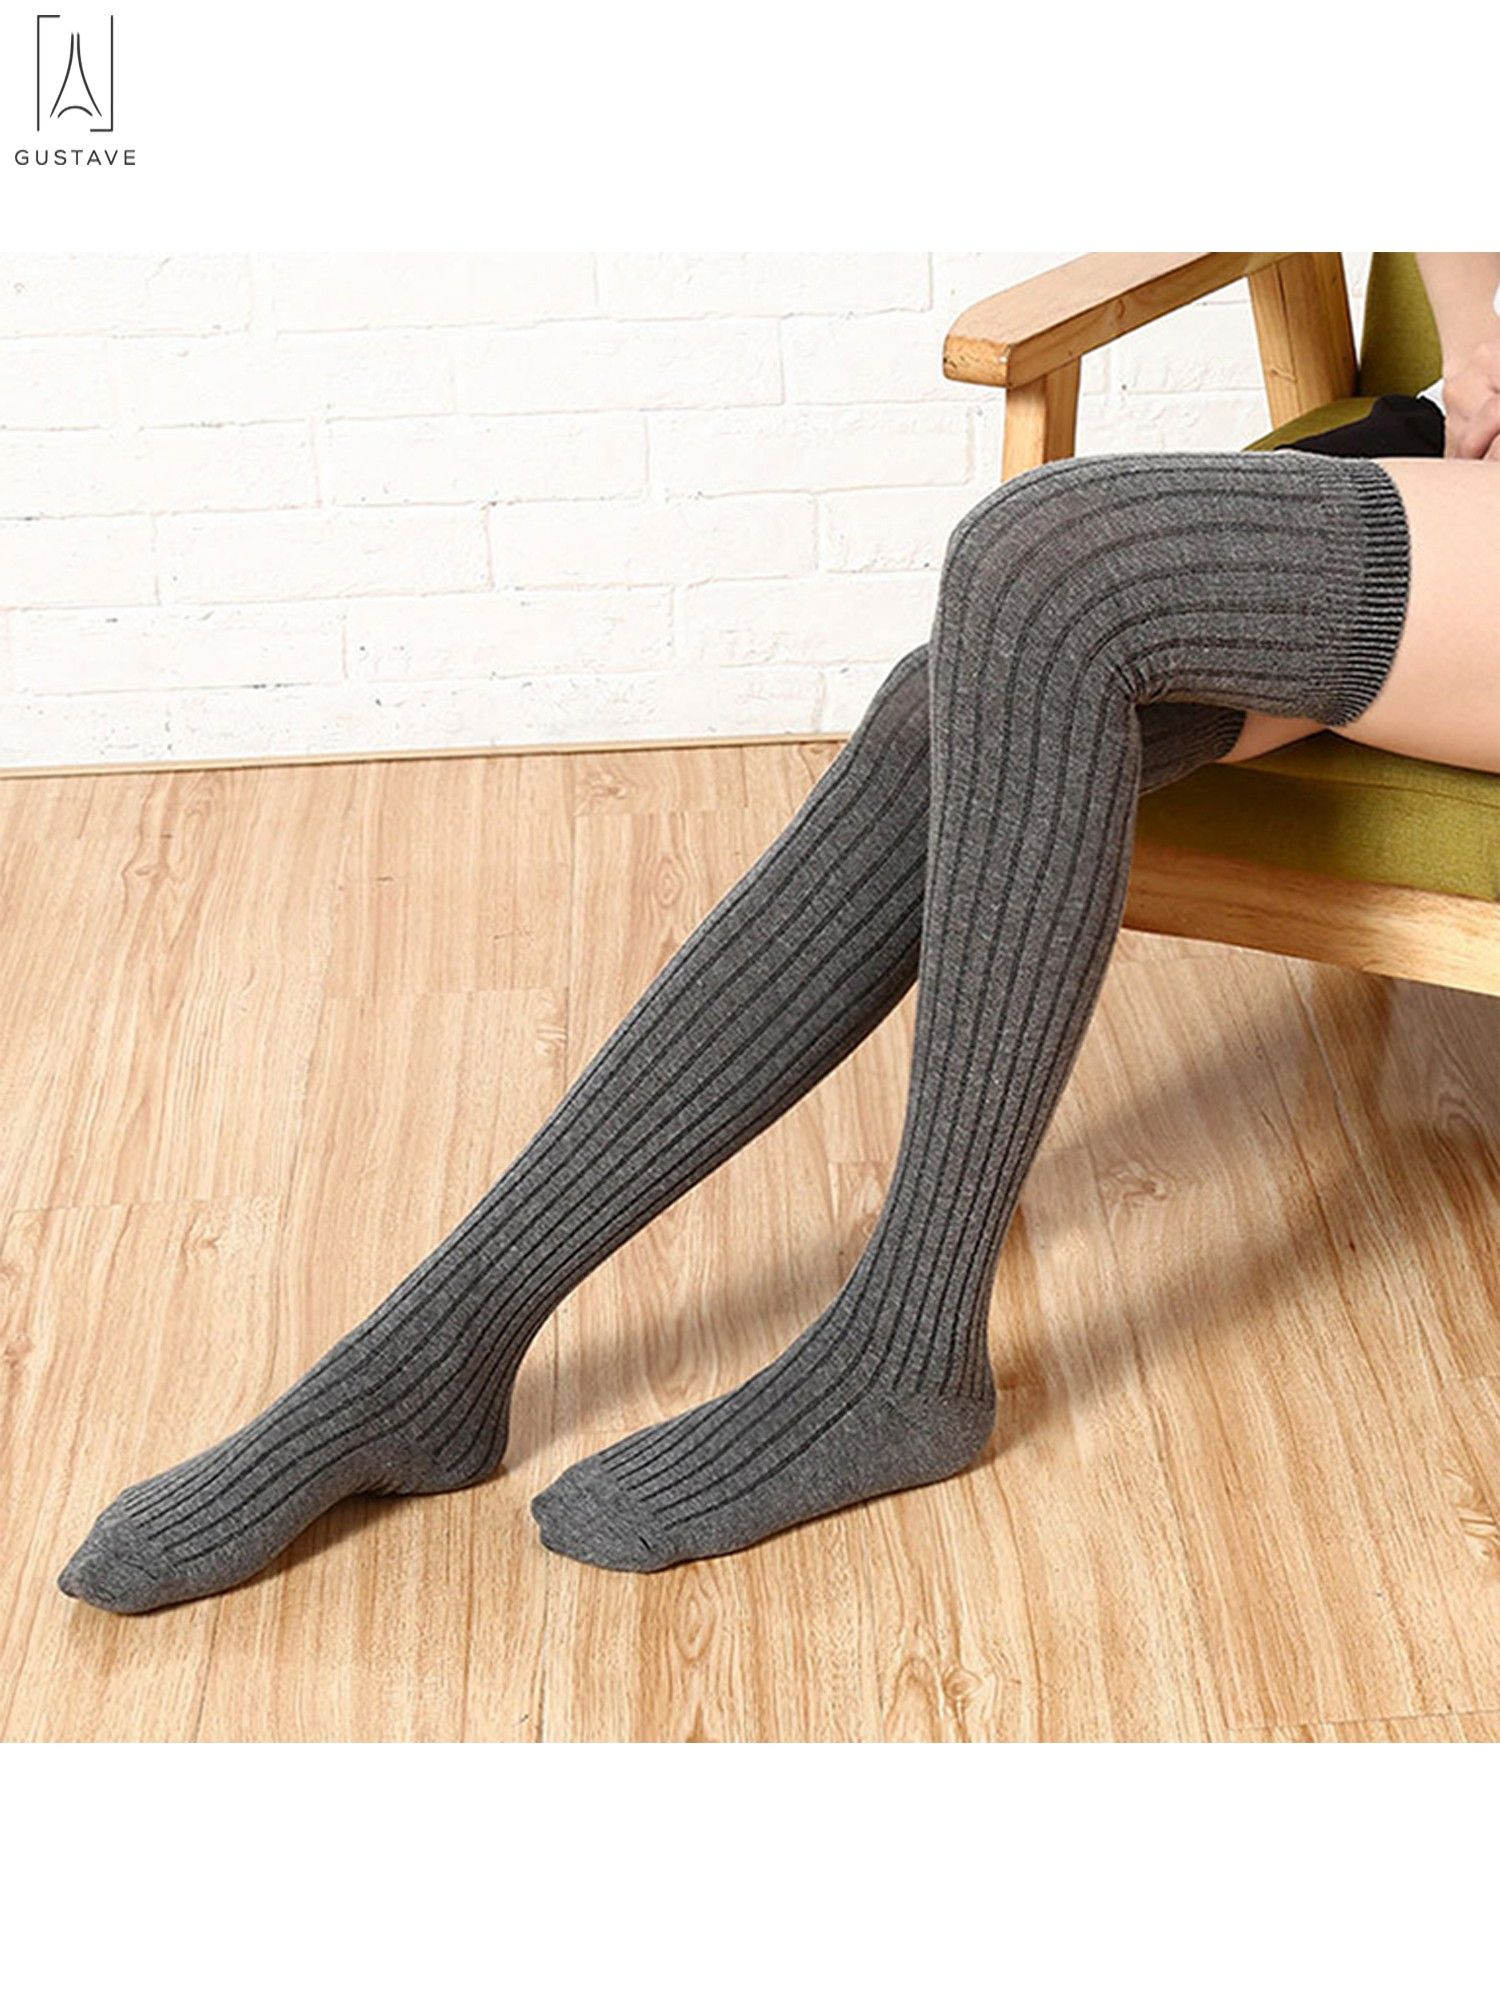 96608068973 GustaveDesign Women Thigh High Socks Over the Knee Leg Warmer High Boot Knit  Stocking